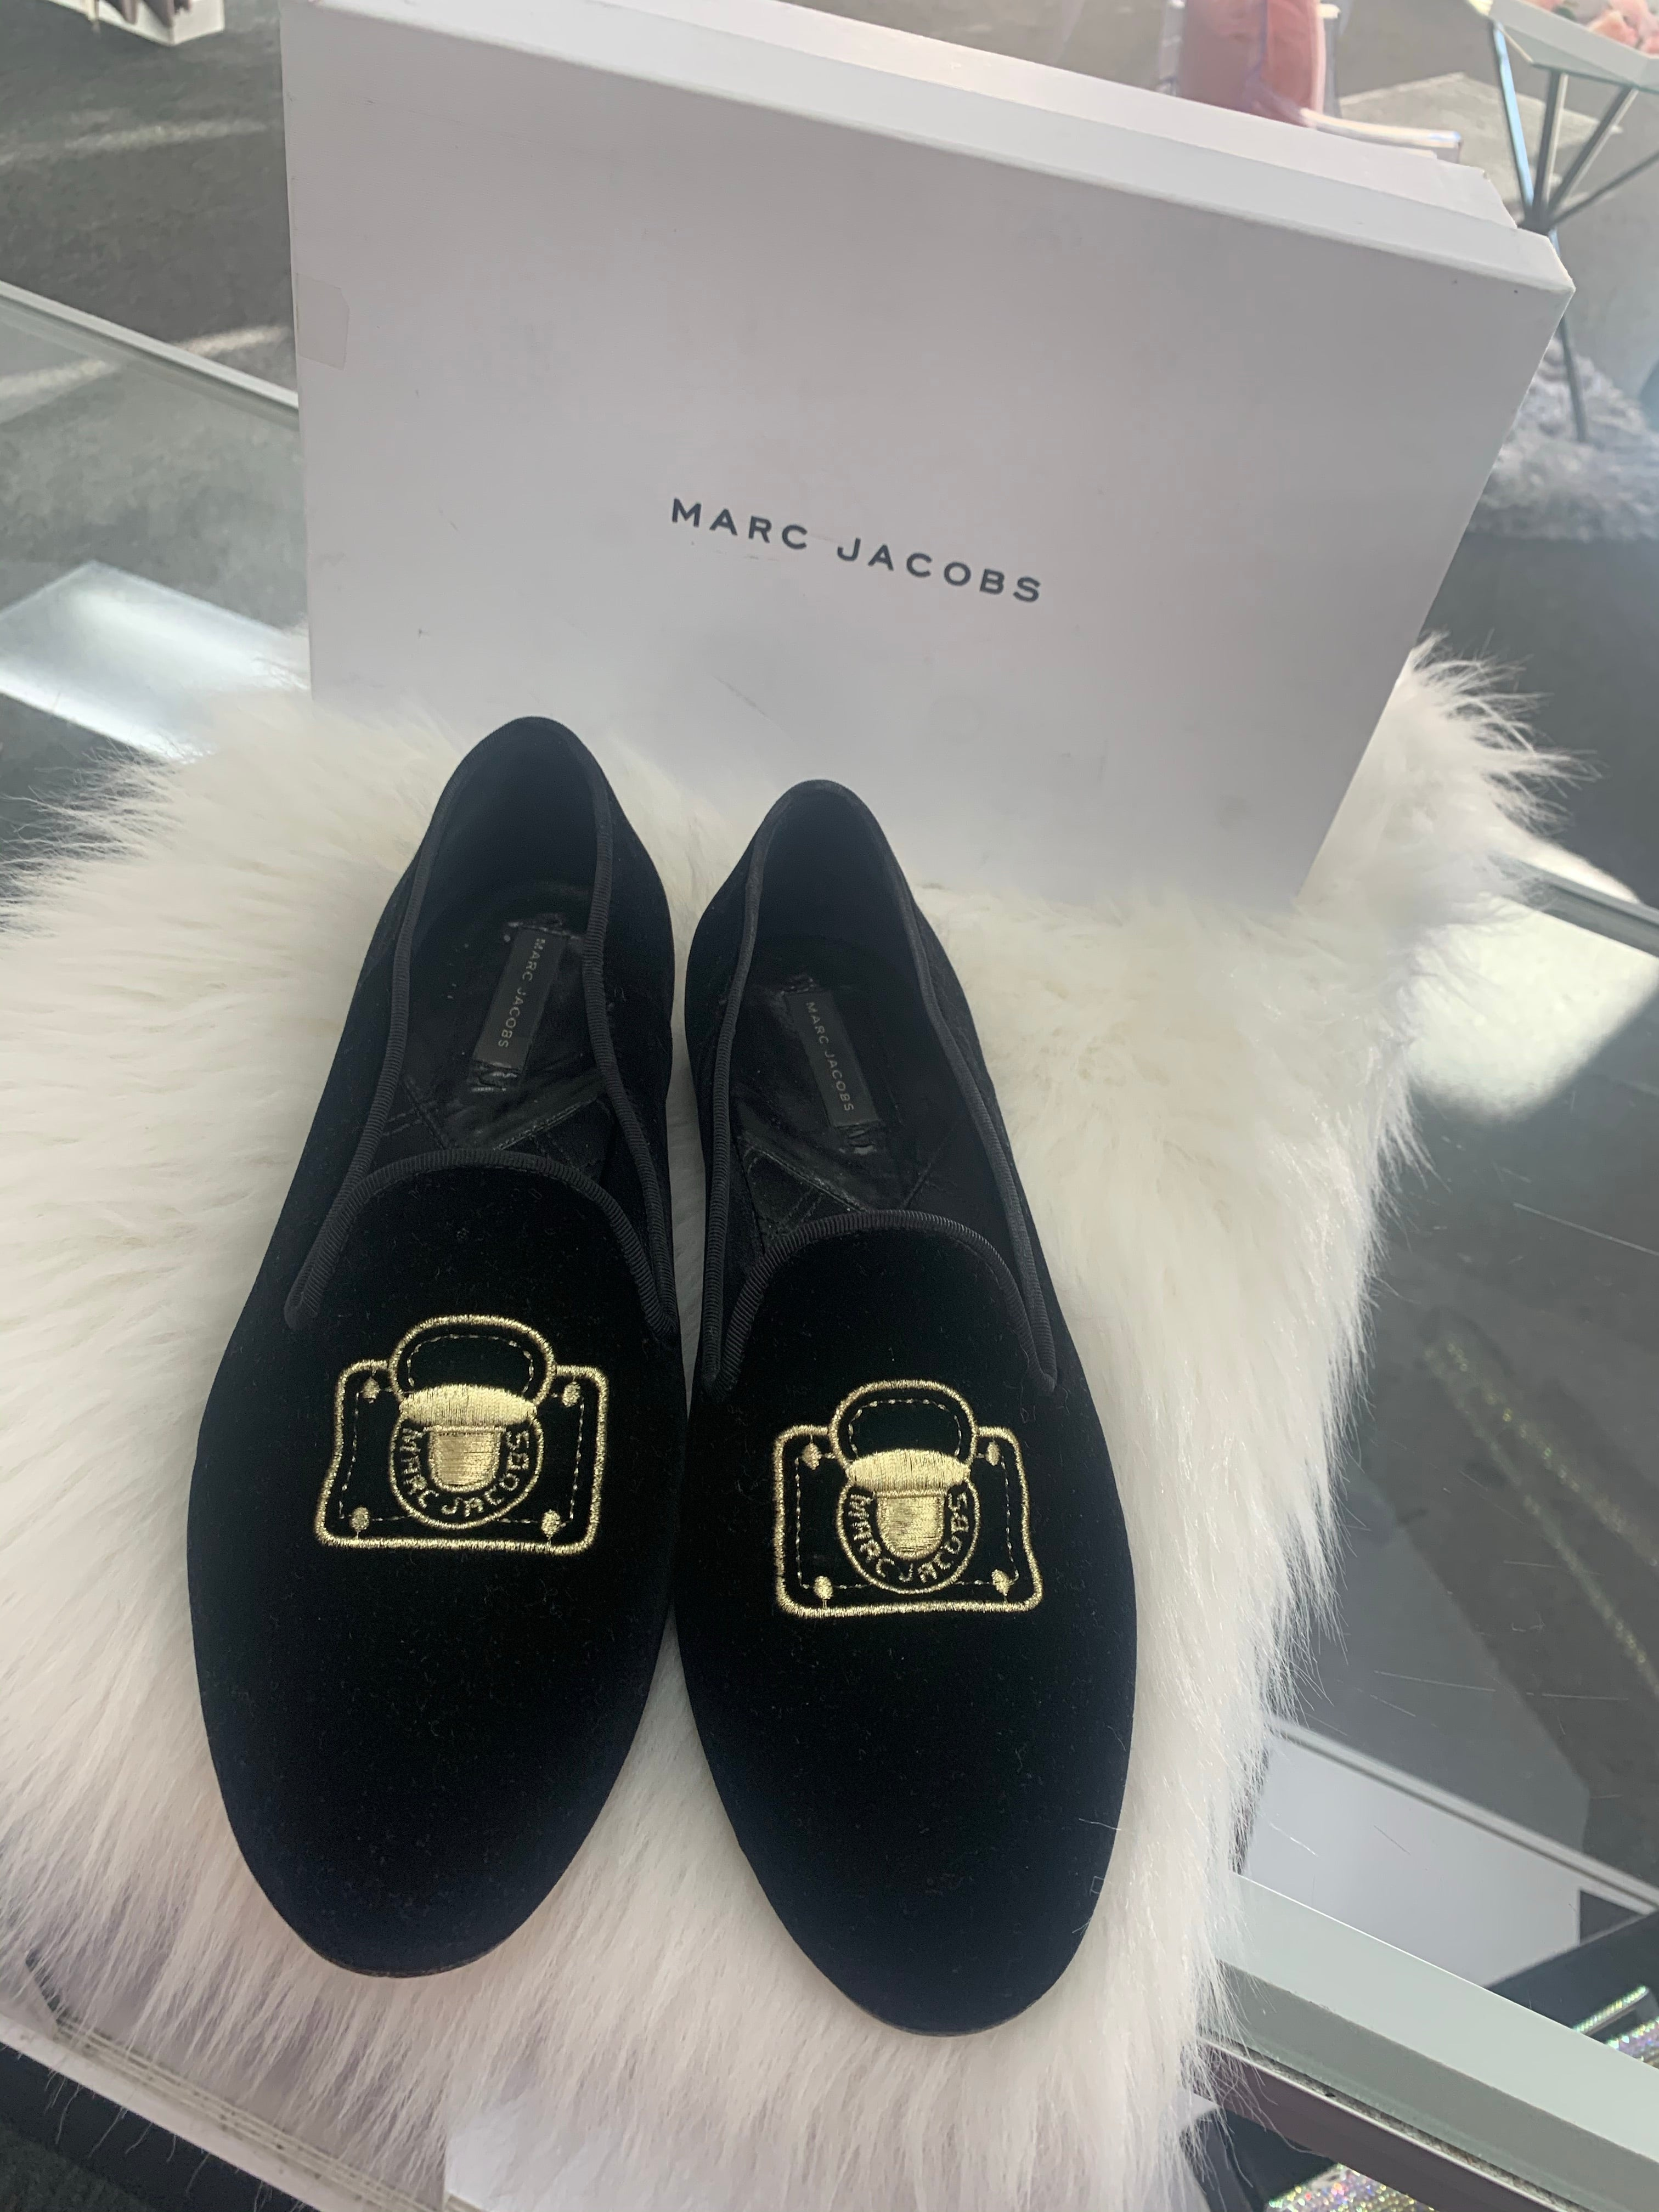 Marc Jacobs Velvet Plush Signature Loafers